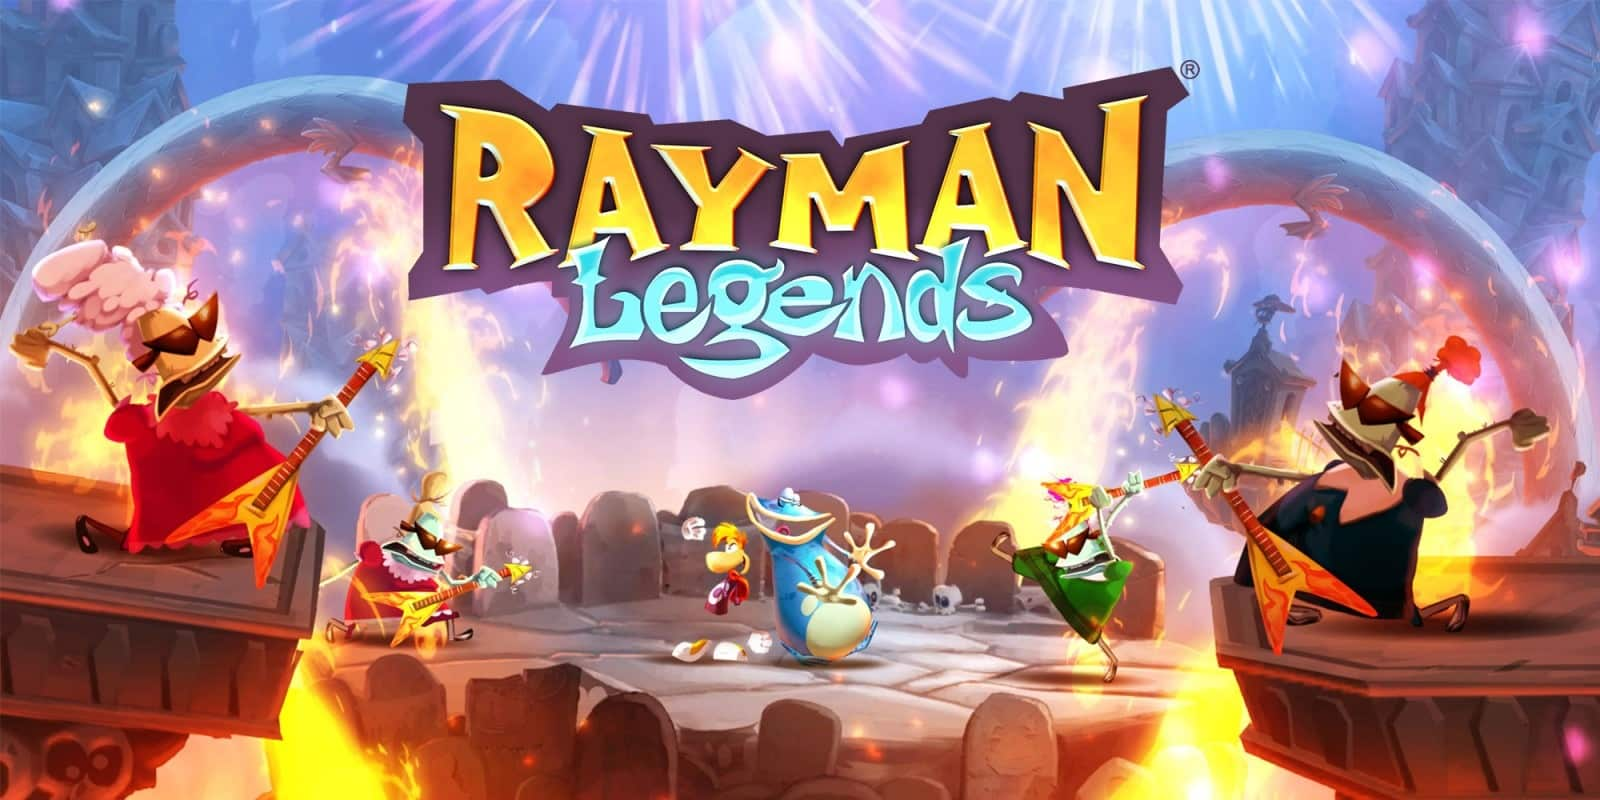 Rayman Legends Epic Games Store Free Game